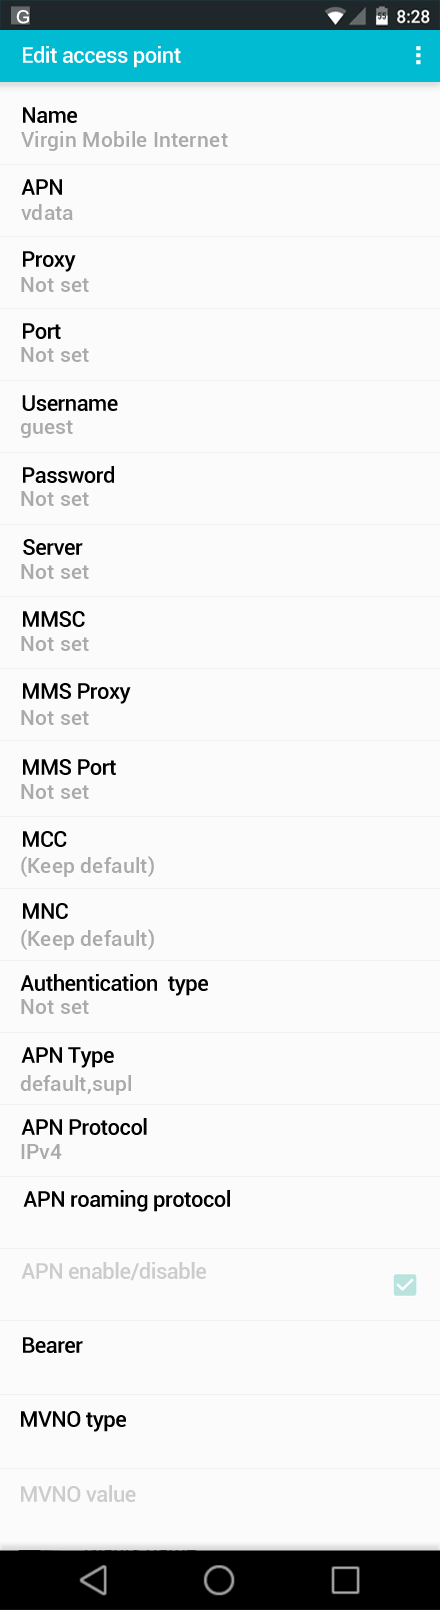 Virgin Mobile Internet APN settings for Android screenshot